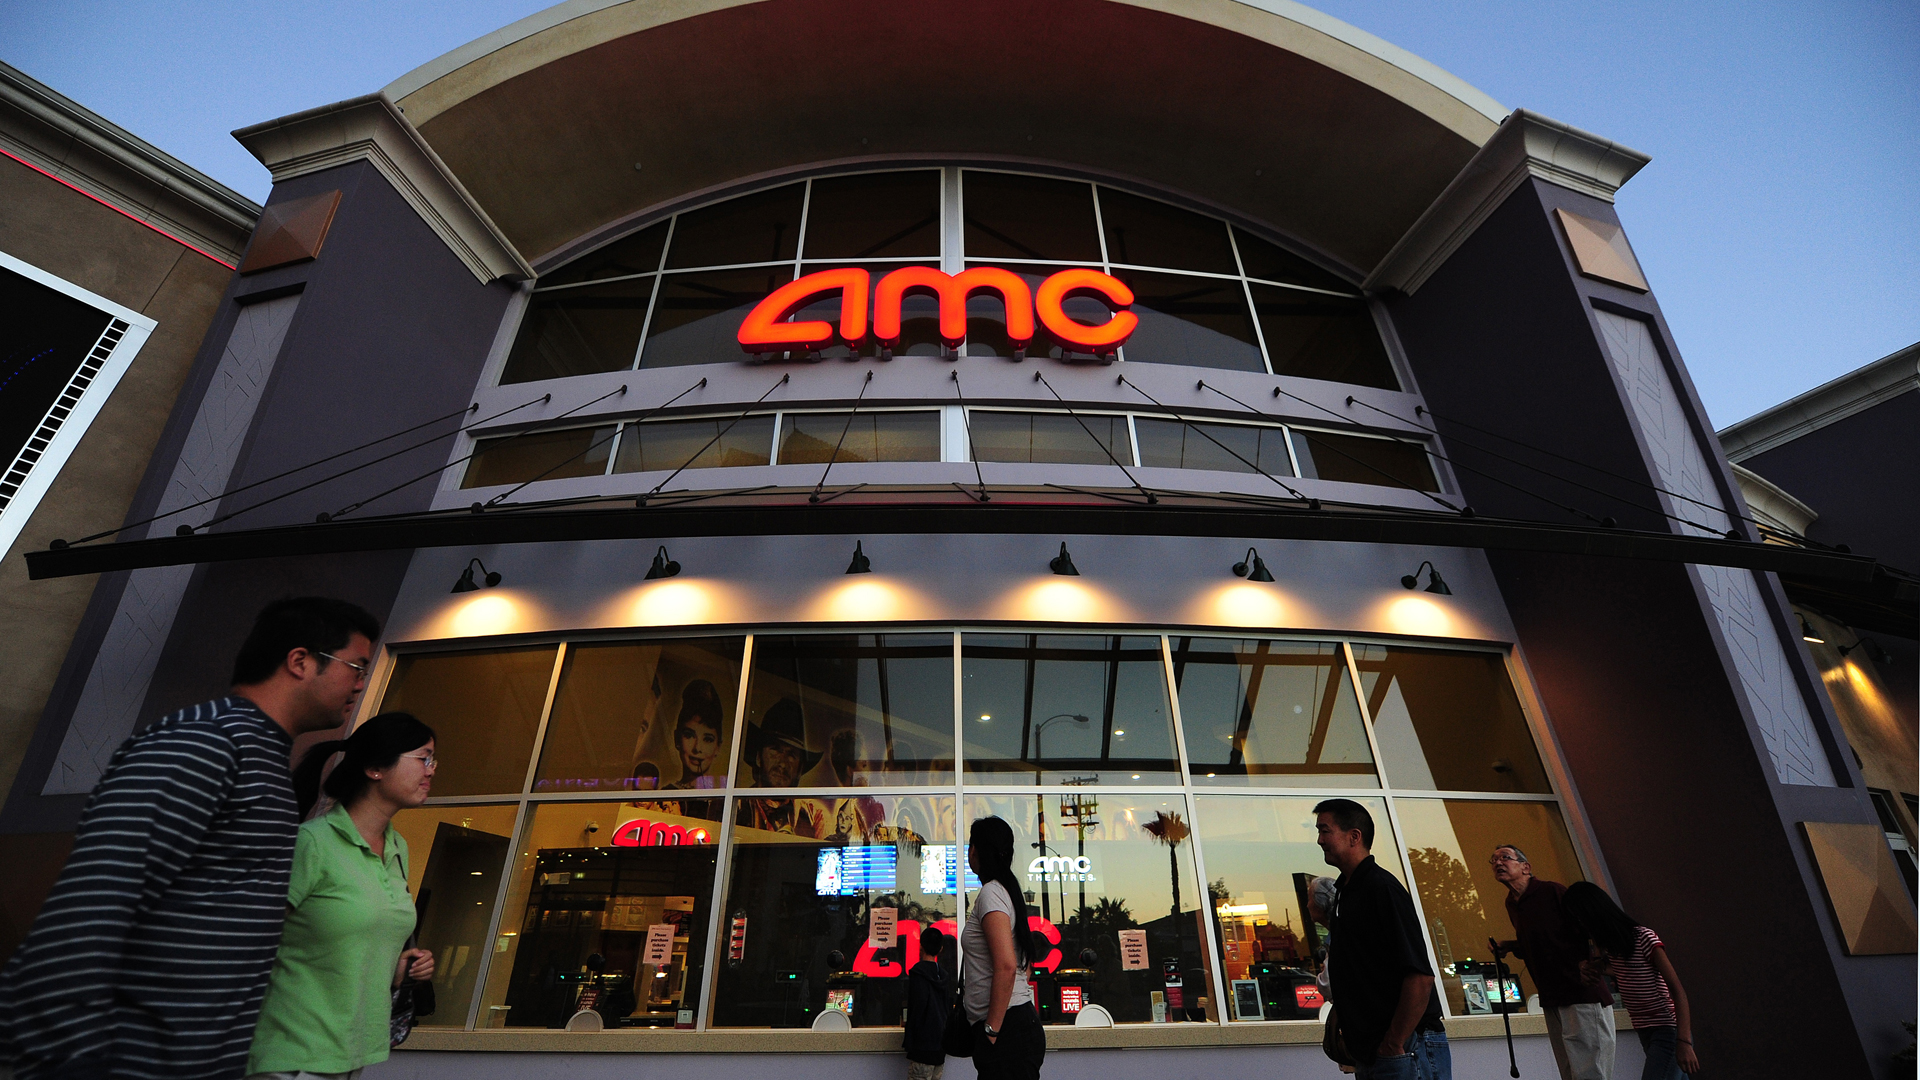 People walk past movie theaters of the US cinema chain AMC Entertainment in Monterey Park on May 22, 2012. (Credit: FREDERIC J.BROWN/AFP/GettyImages)